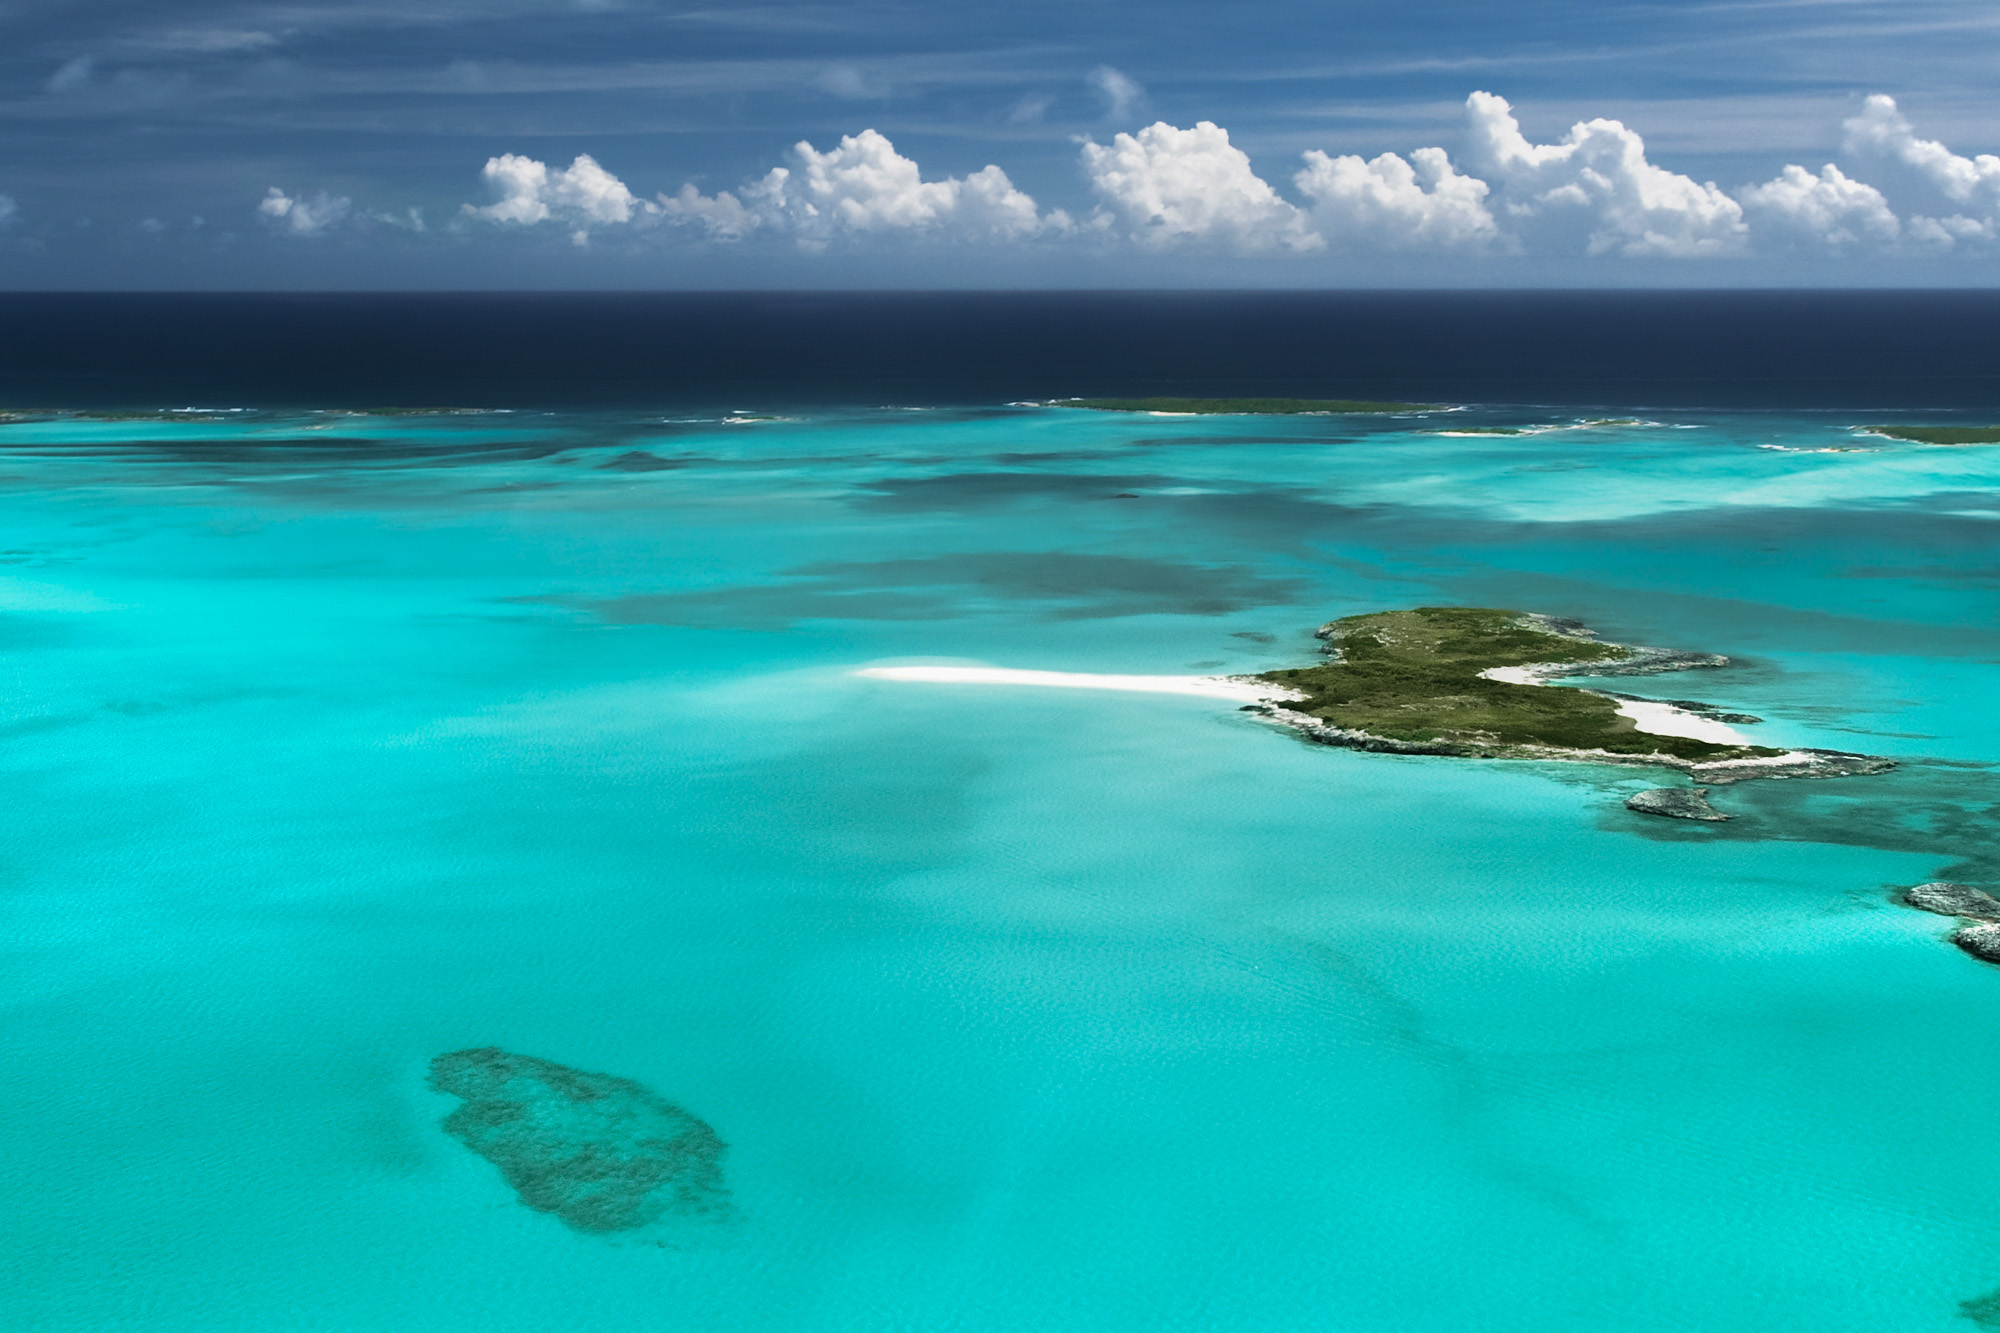 Bahamas Day Trips and Bahamas Tours from Florida. FLy to the swimming pigs at Staniel Cay in the Exumas